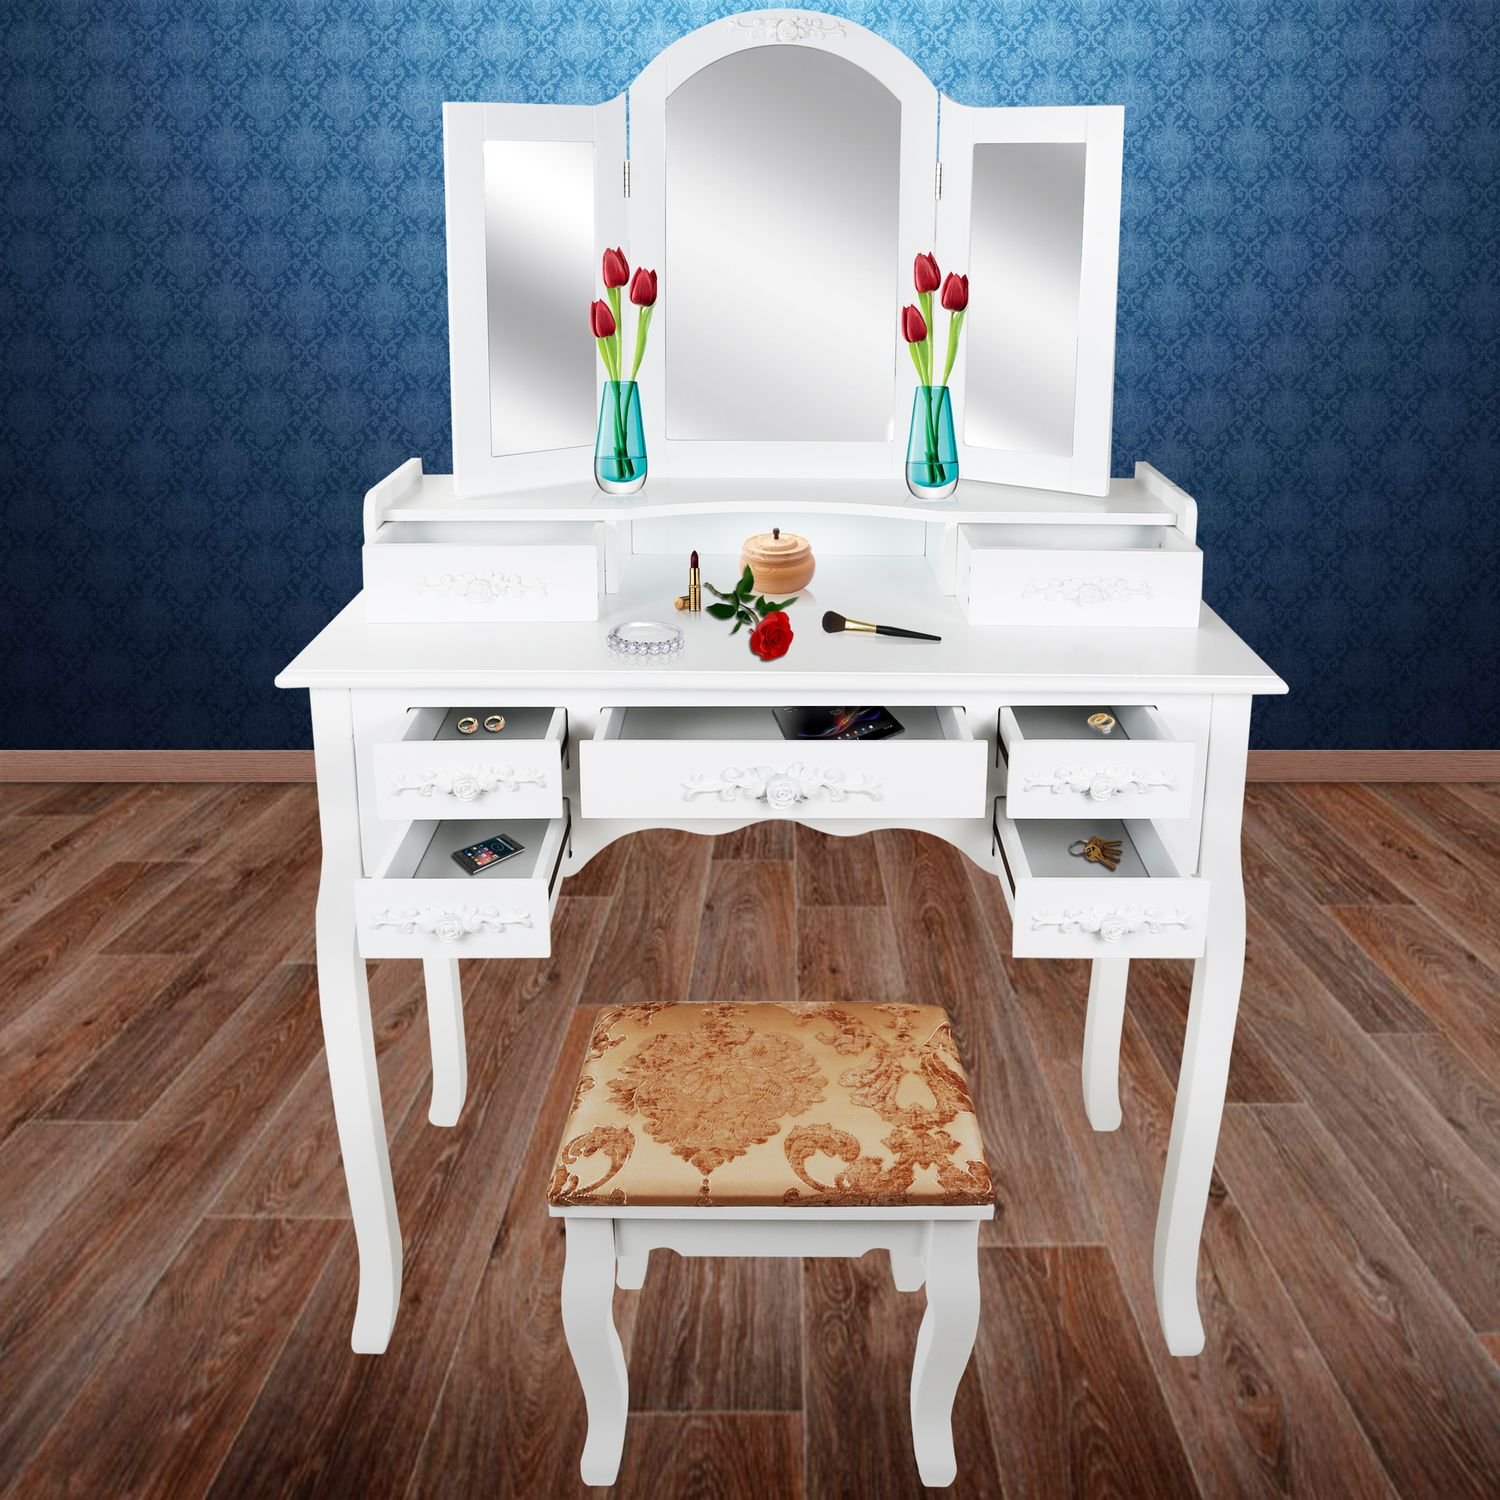 kesser dressing table mirrors drawers make up station. Black Bedroom Furniture Sets. Home Design Ideas